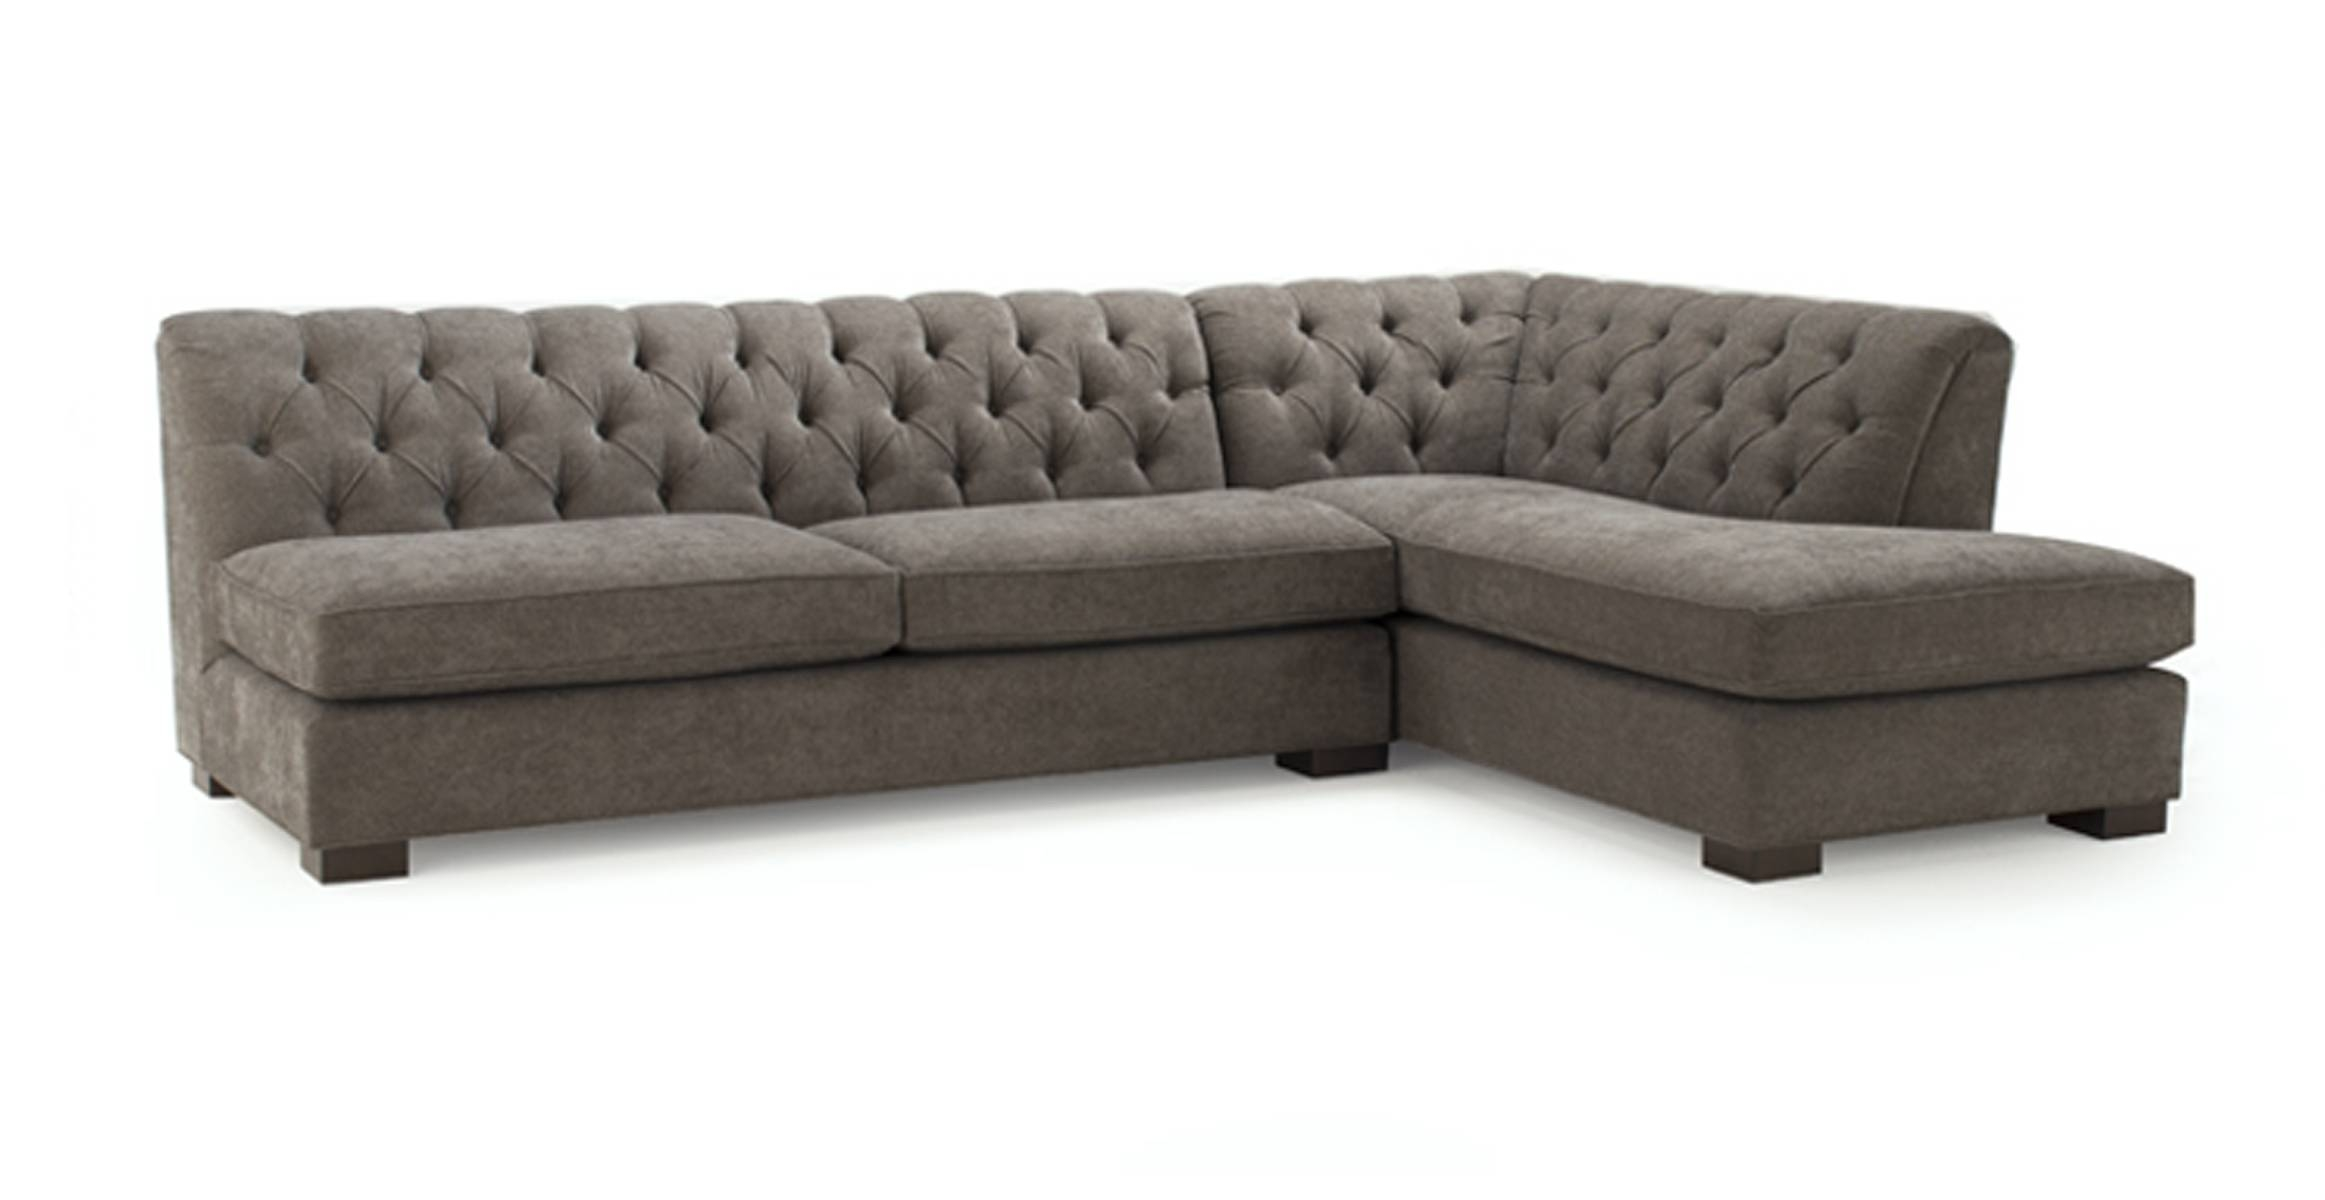 Mitchell Gold Outlet Sofa: 13 Remarkable Mitchell Gold Sectional intended for Mitchell Gold Martin Sofas (Image 9 of 15)